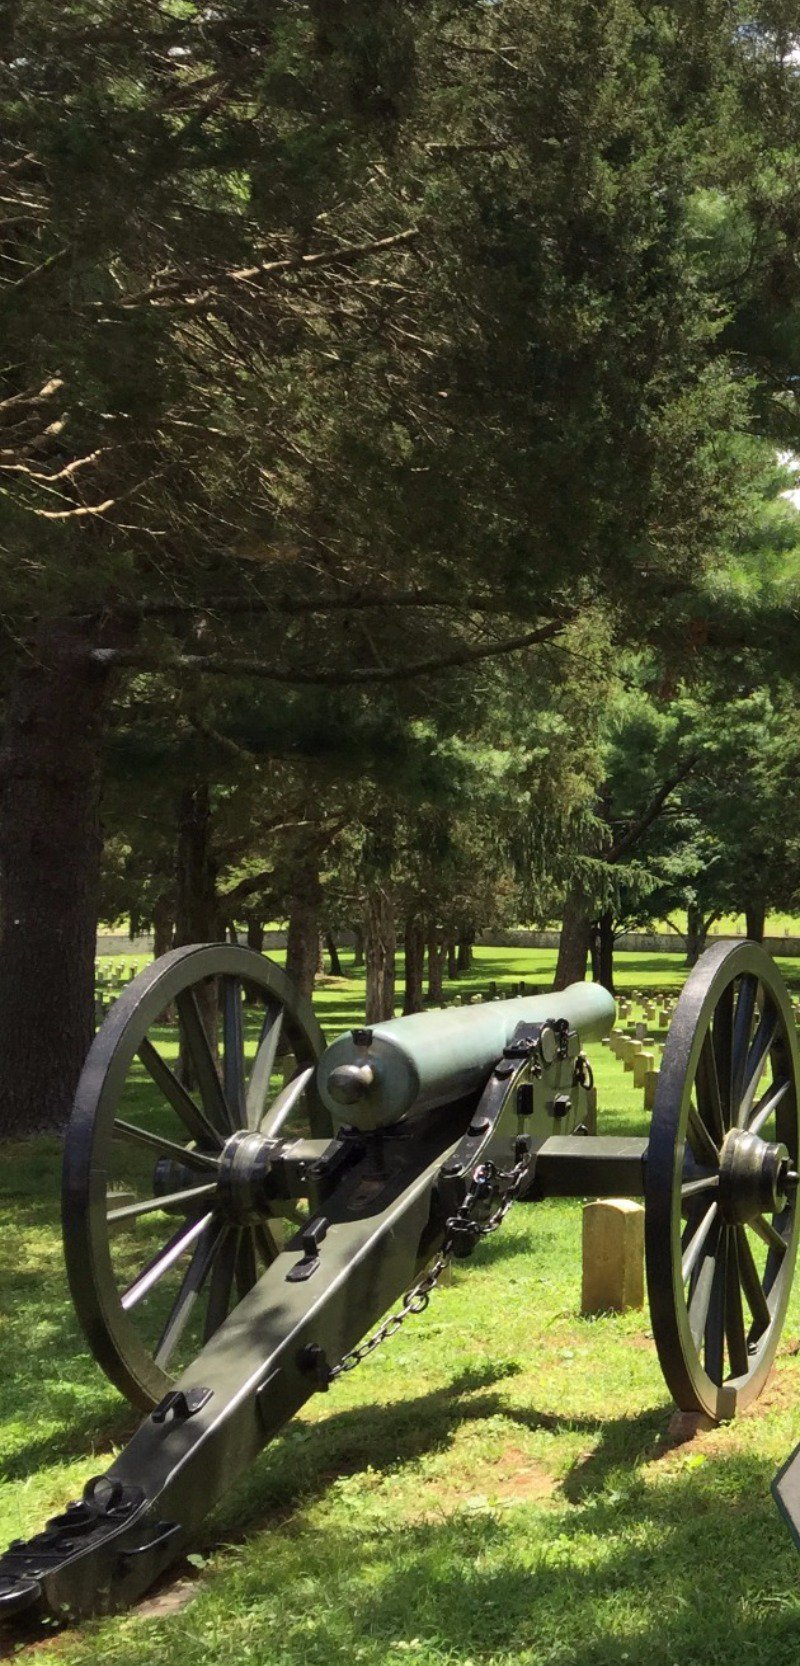 Cannon amid tombstones.